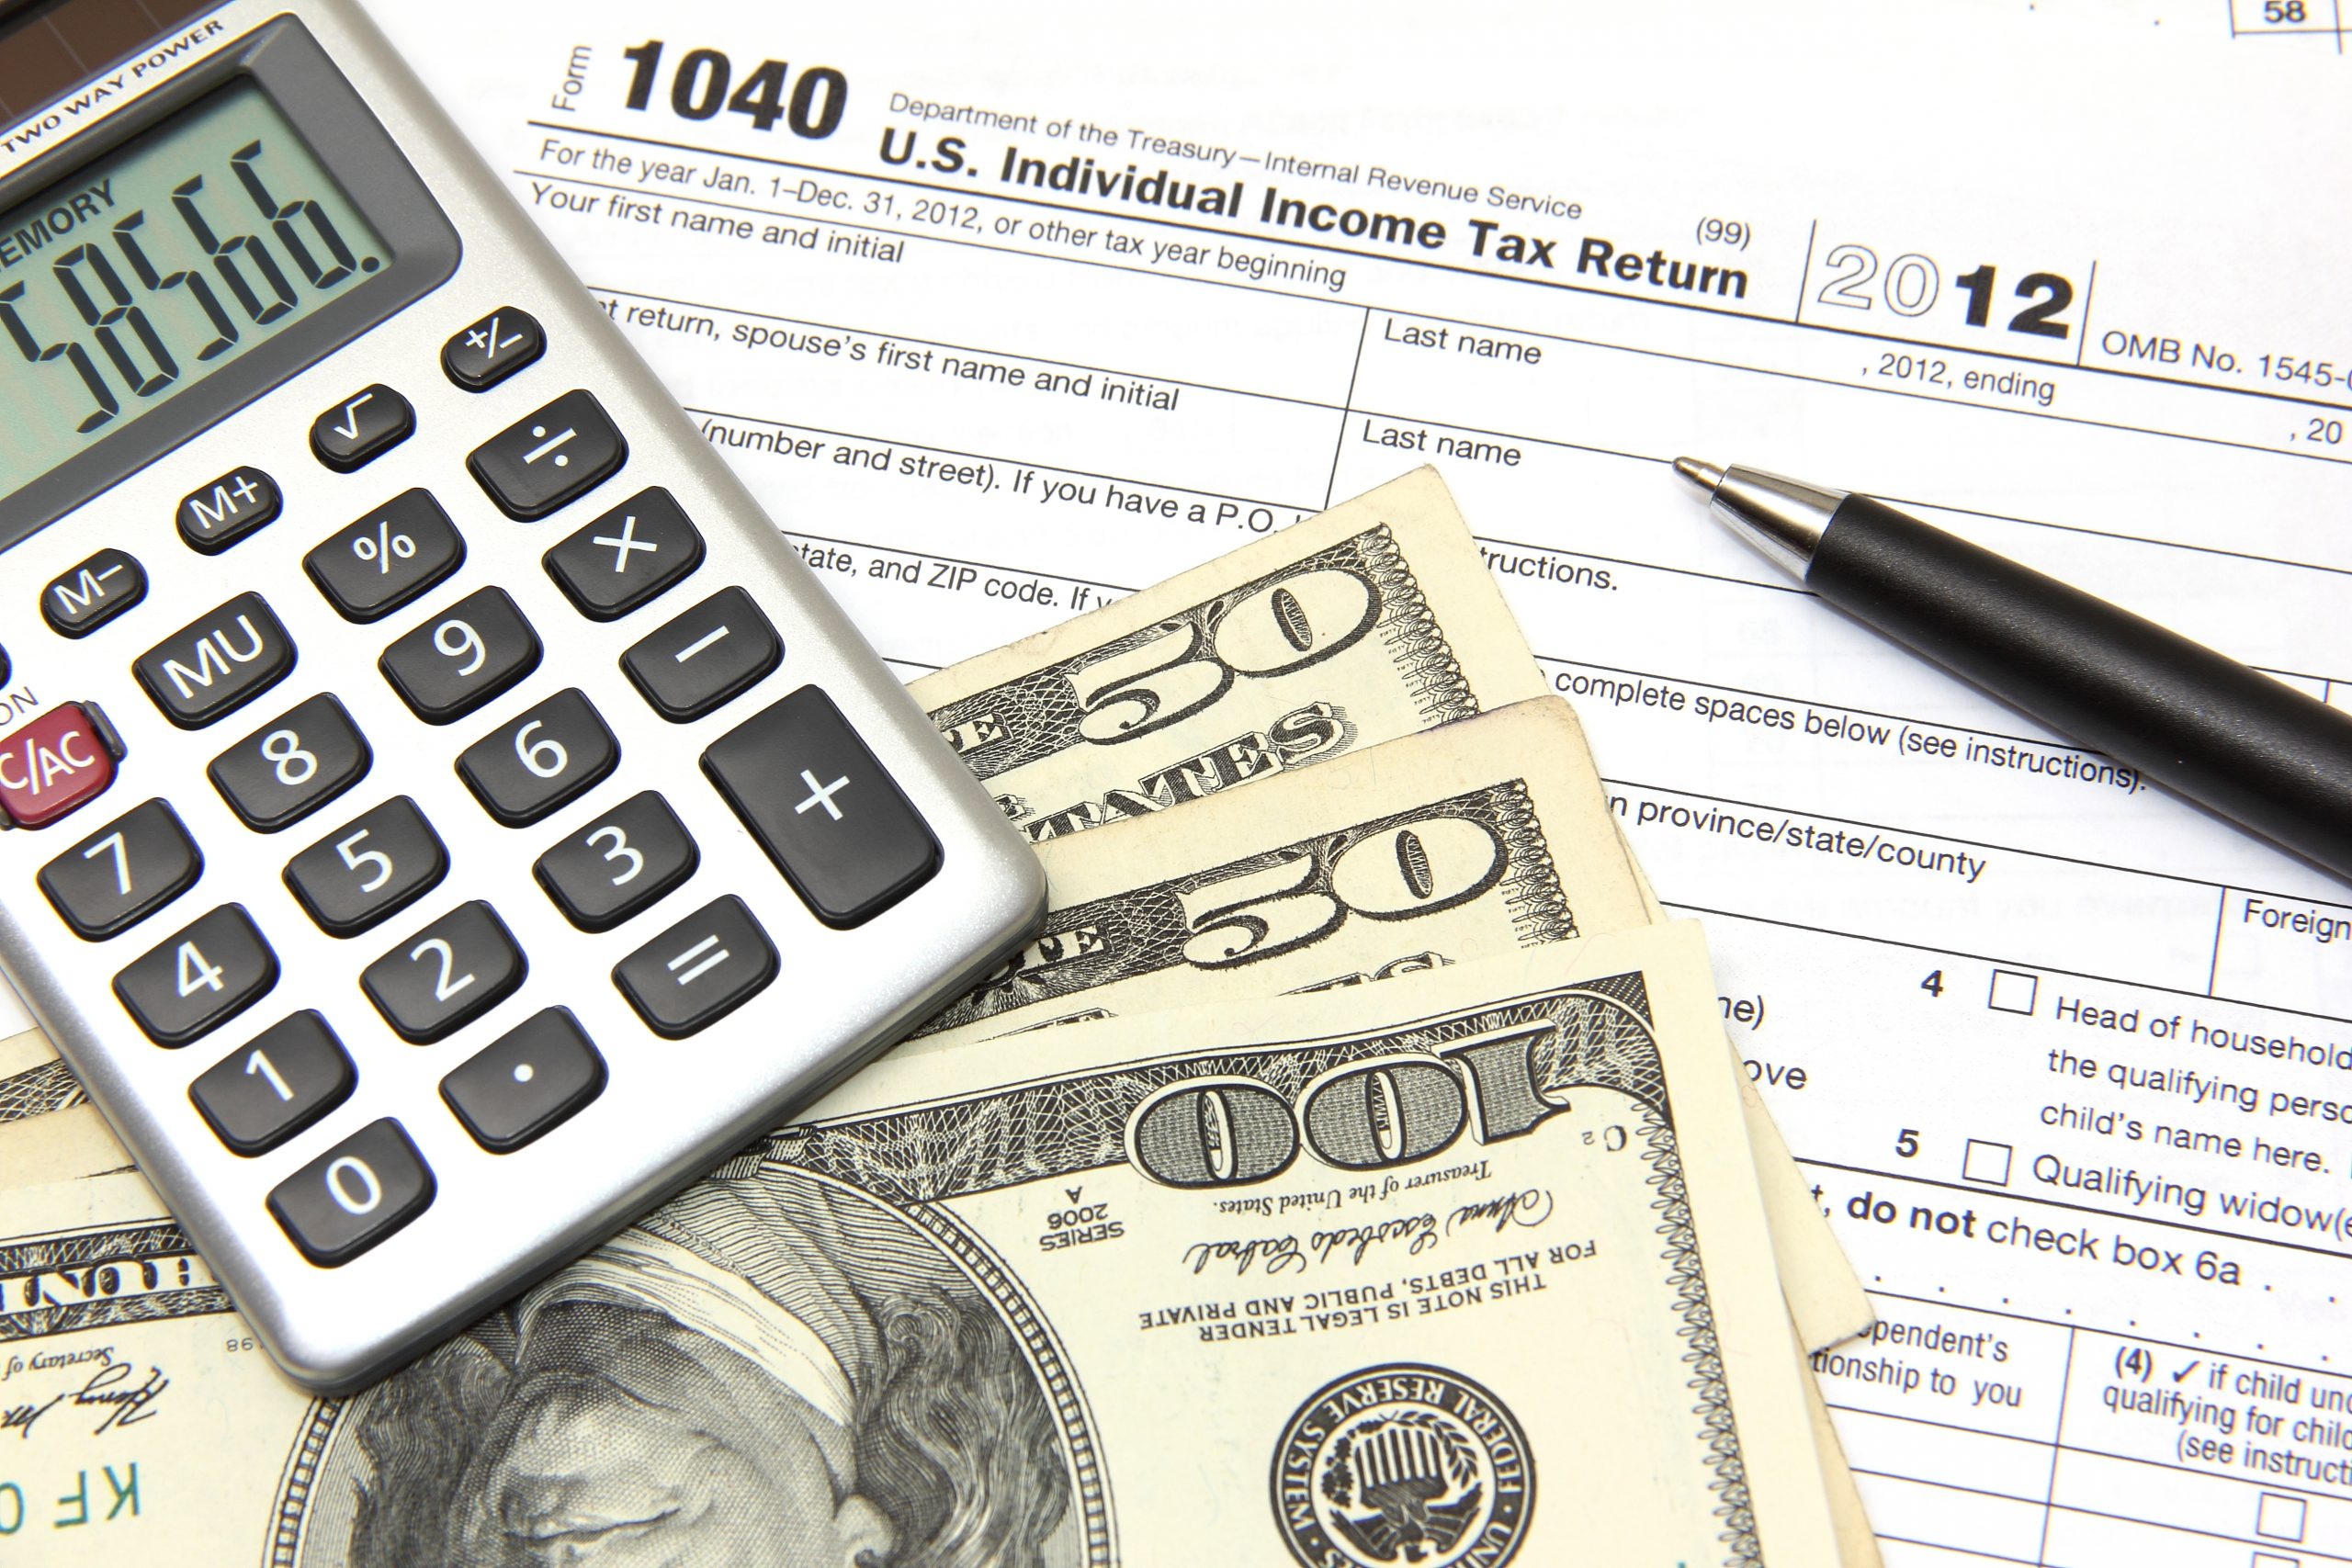 Form 2210 Instructions: Penalty for Underpaying Estimated Taxes